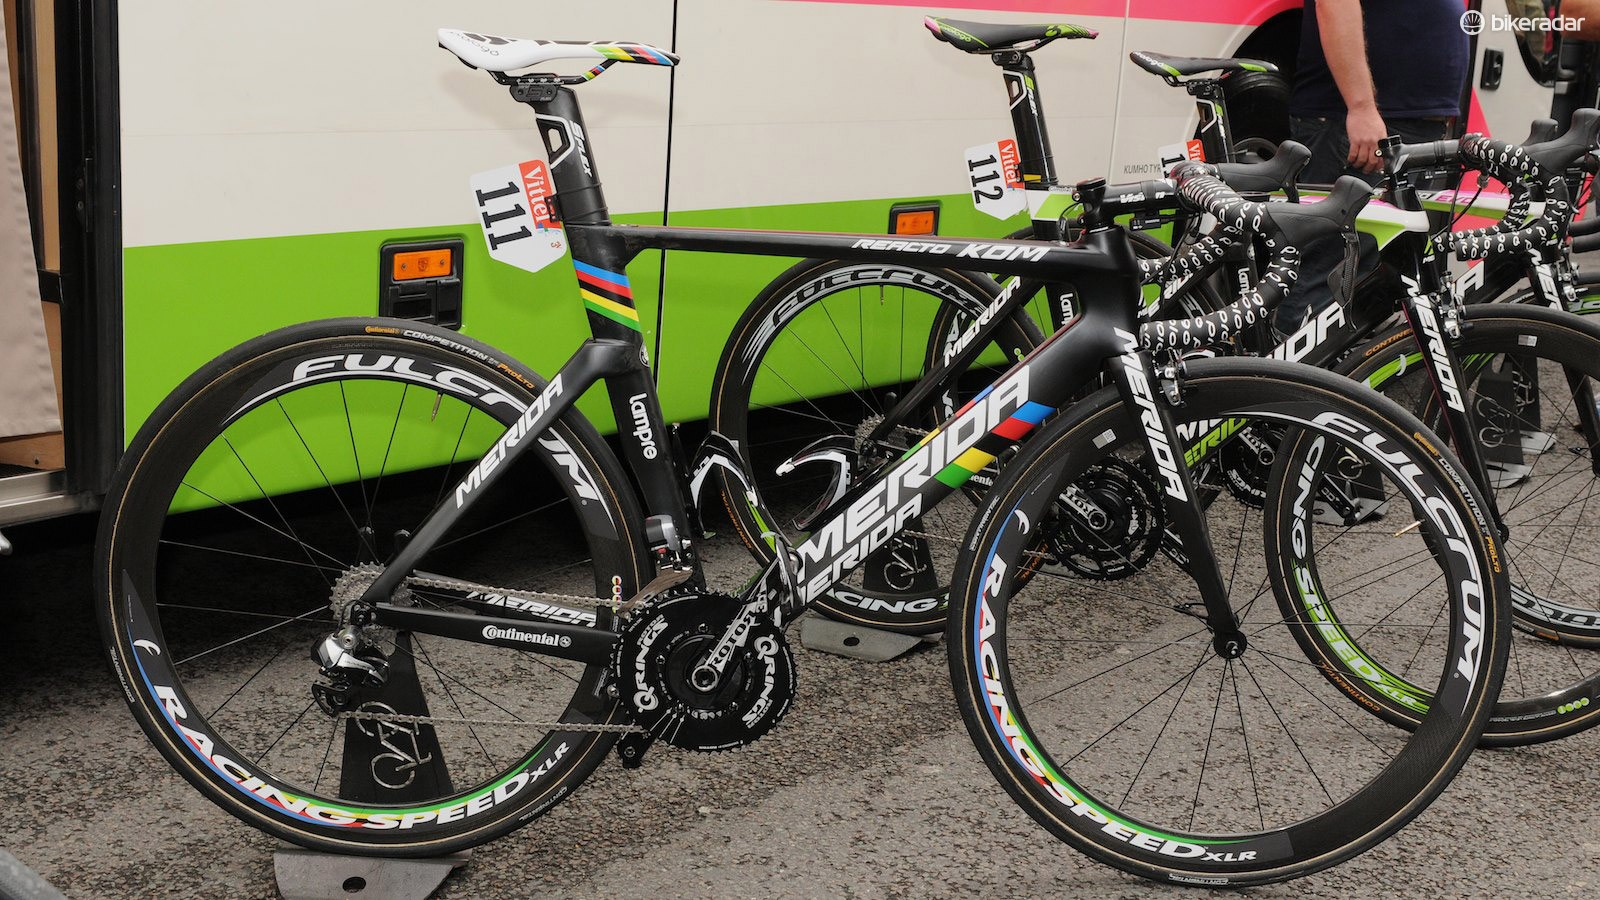 As team leader, Rui Costa is the only Lampre-Merida rider to have the new Merida Reacto KOM frame at the Tour de France